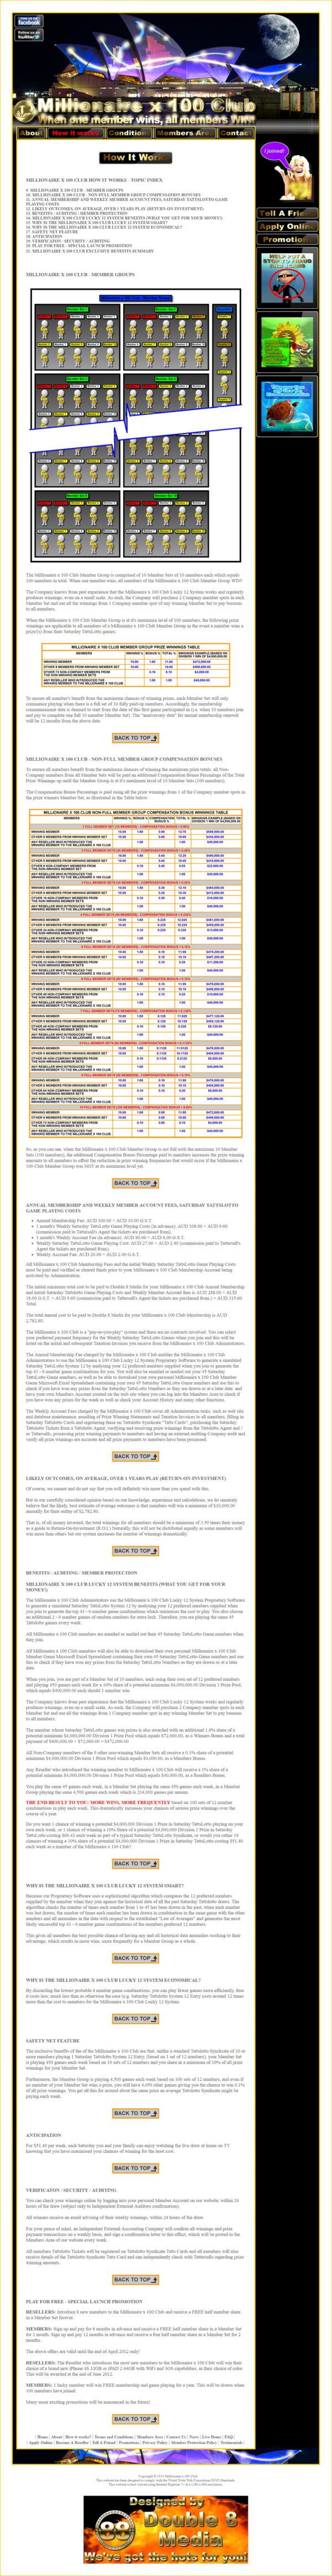 Lotto Excel Spreadsheet Download Within Double 8 Media  Web Design, Graphic Design, Mobile App Development